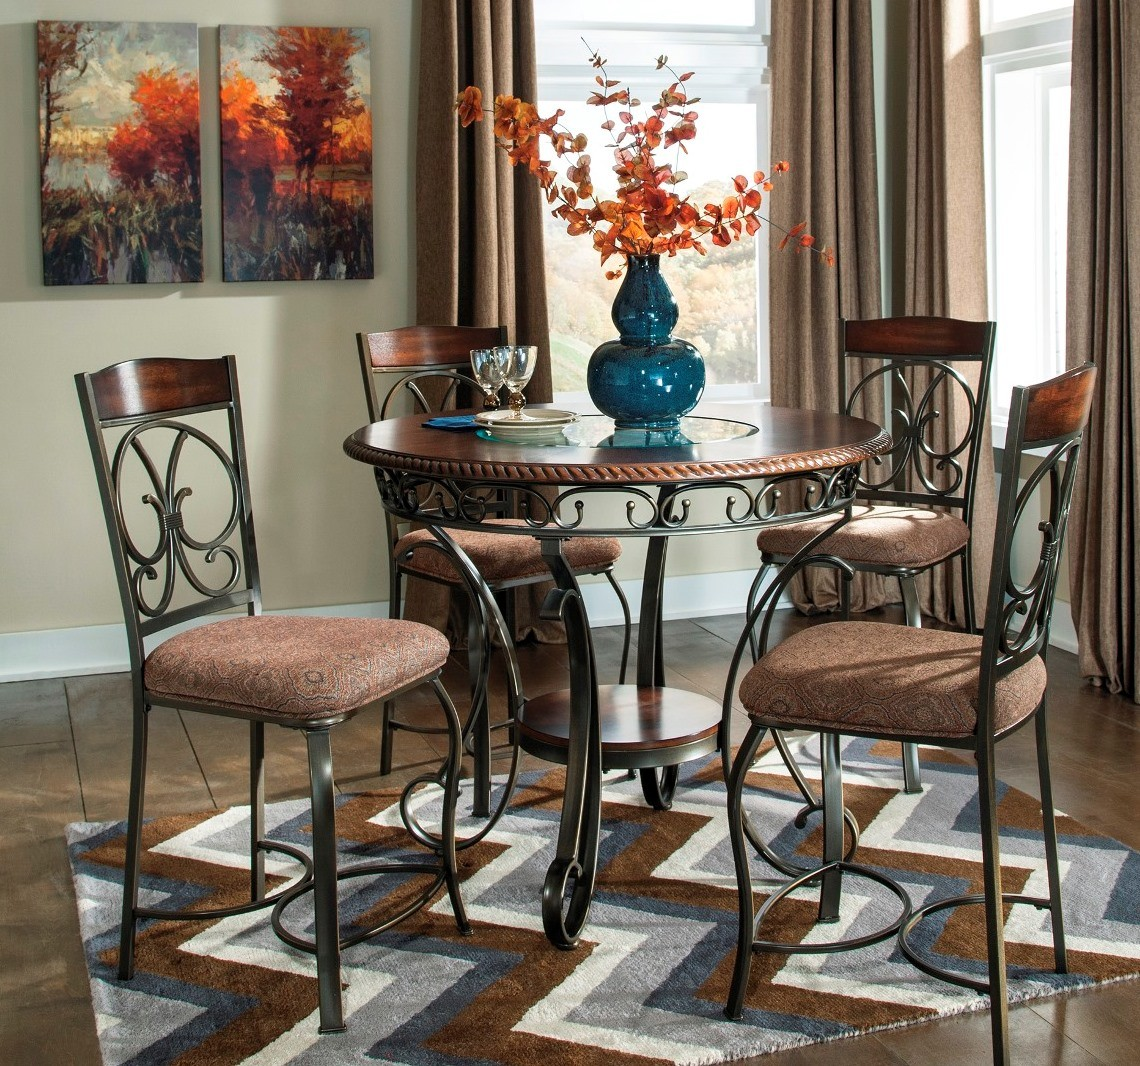 Round Dining Room Sets For 6: Glambrey Round Dining Room Counter Height Table Set From